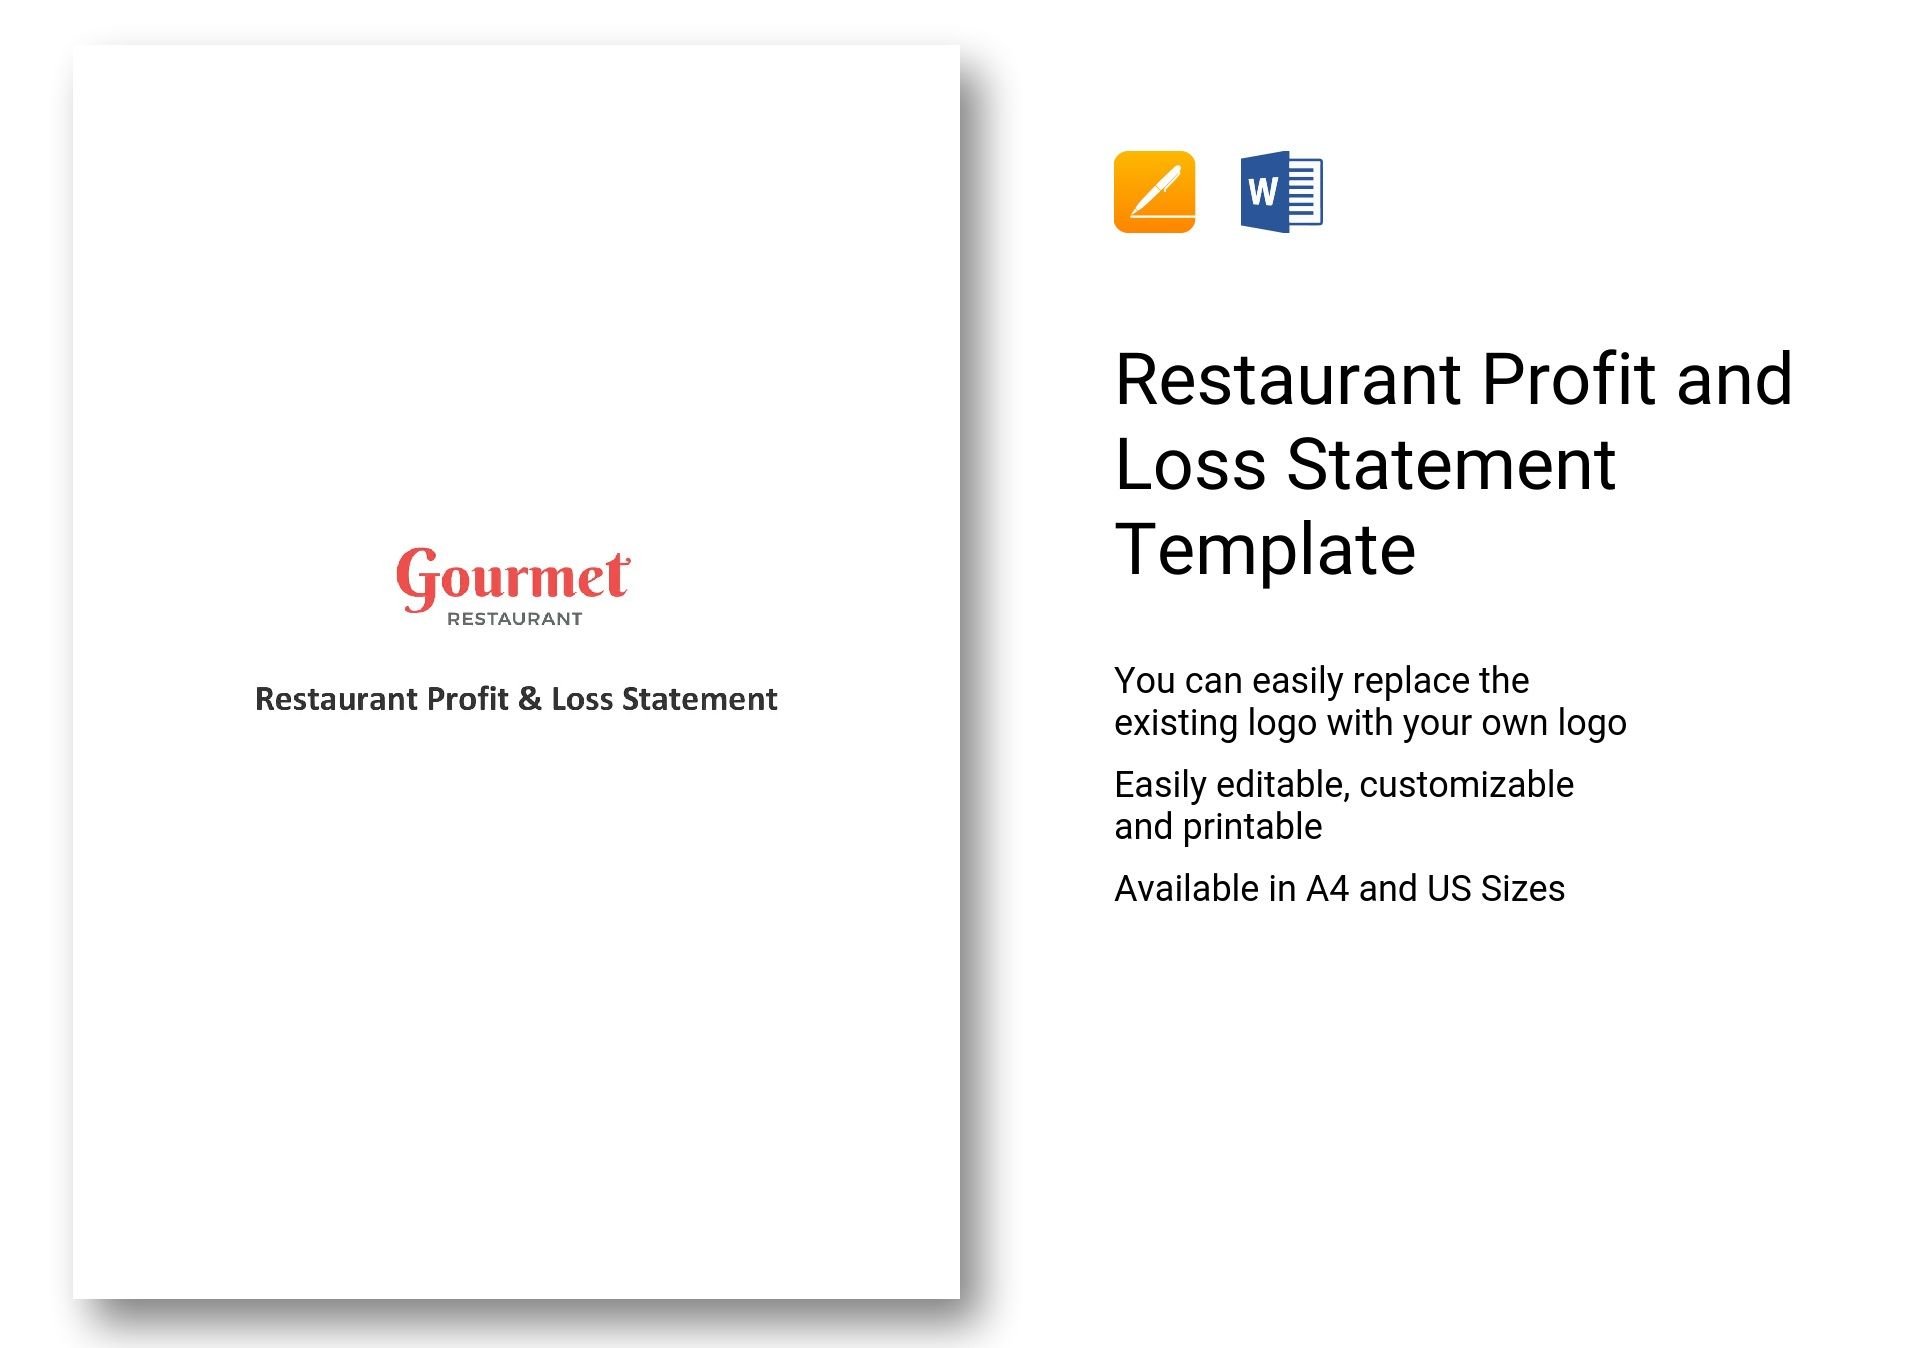 Restaurant Profit And Loss Statement Template In Word